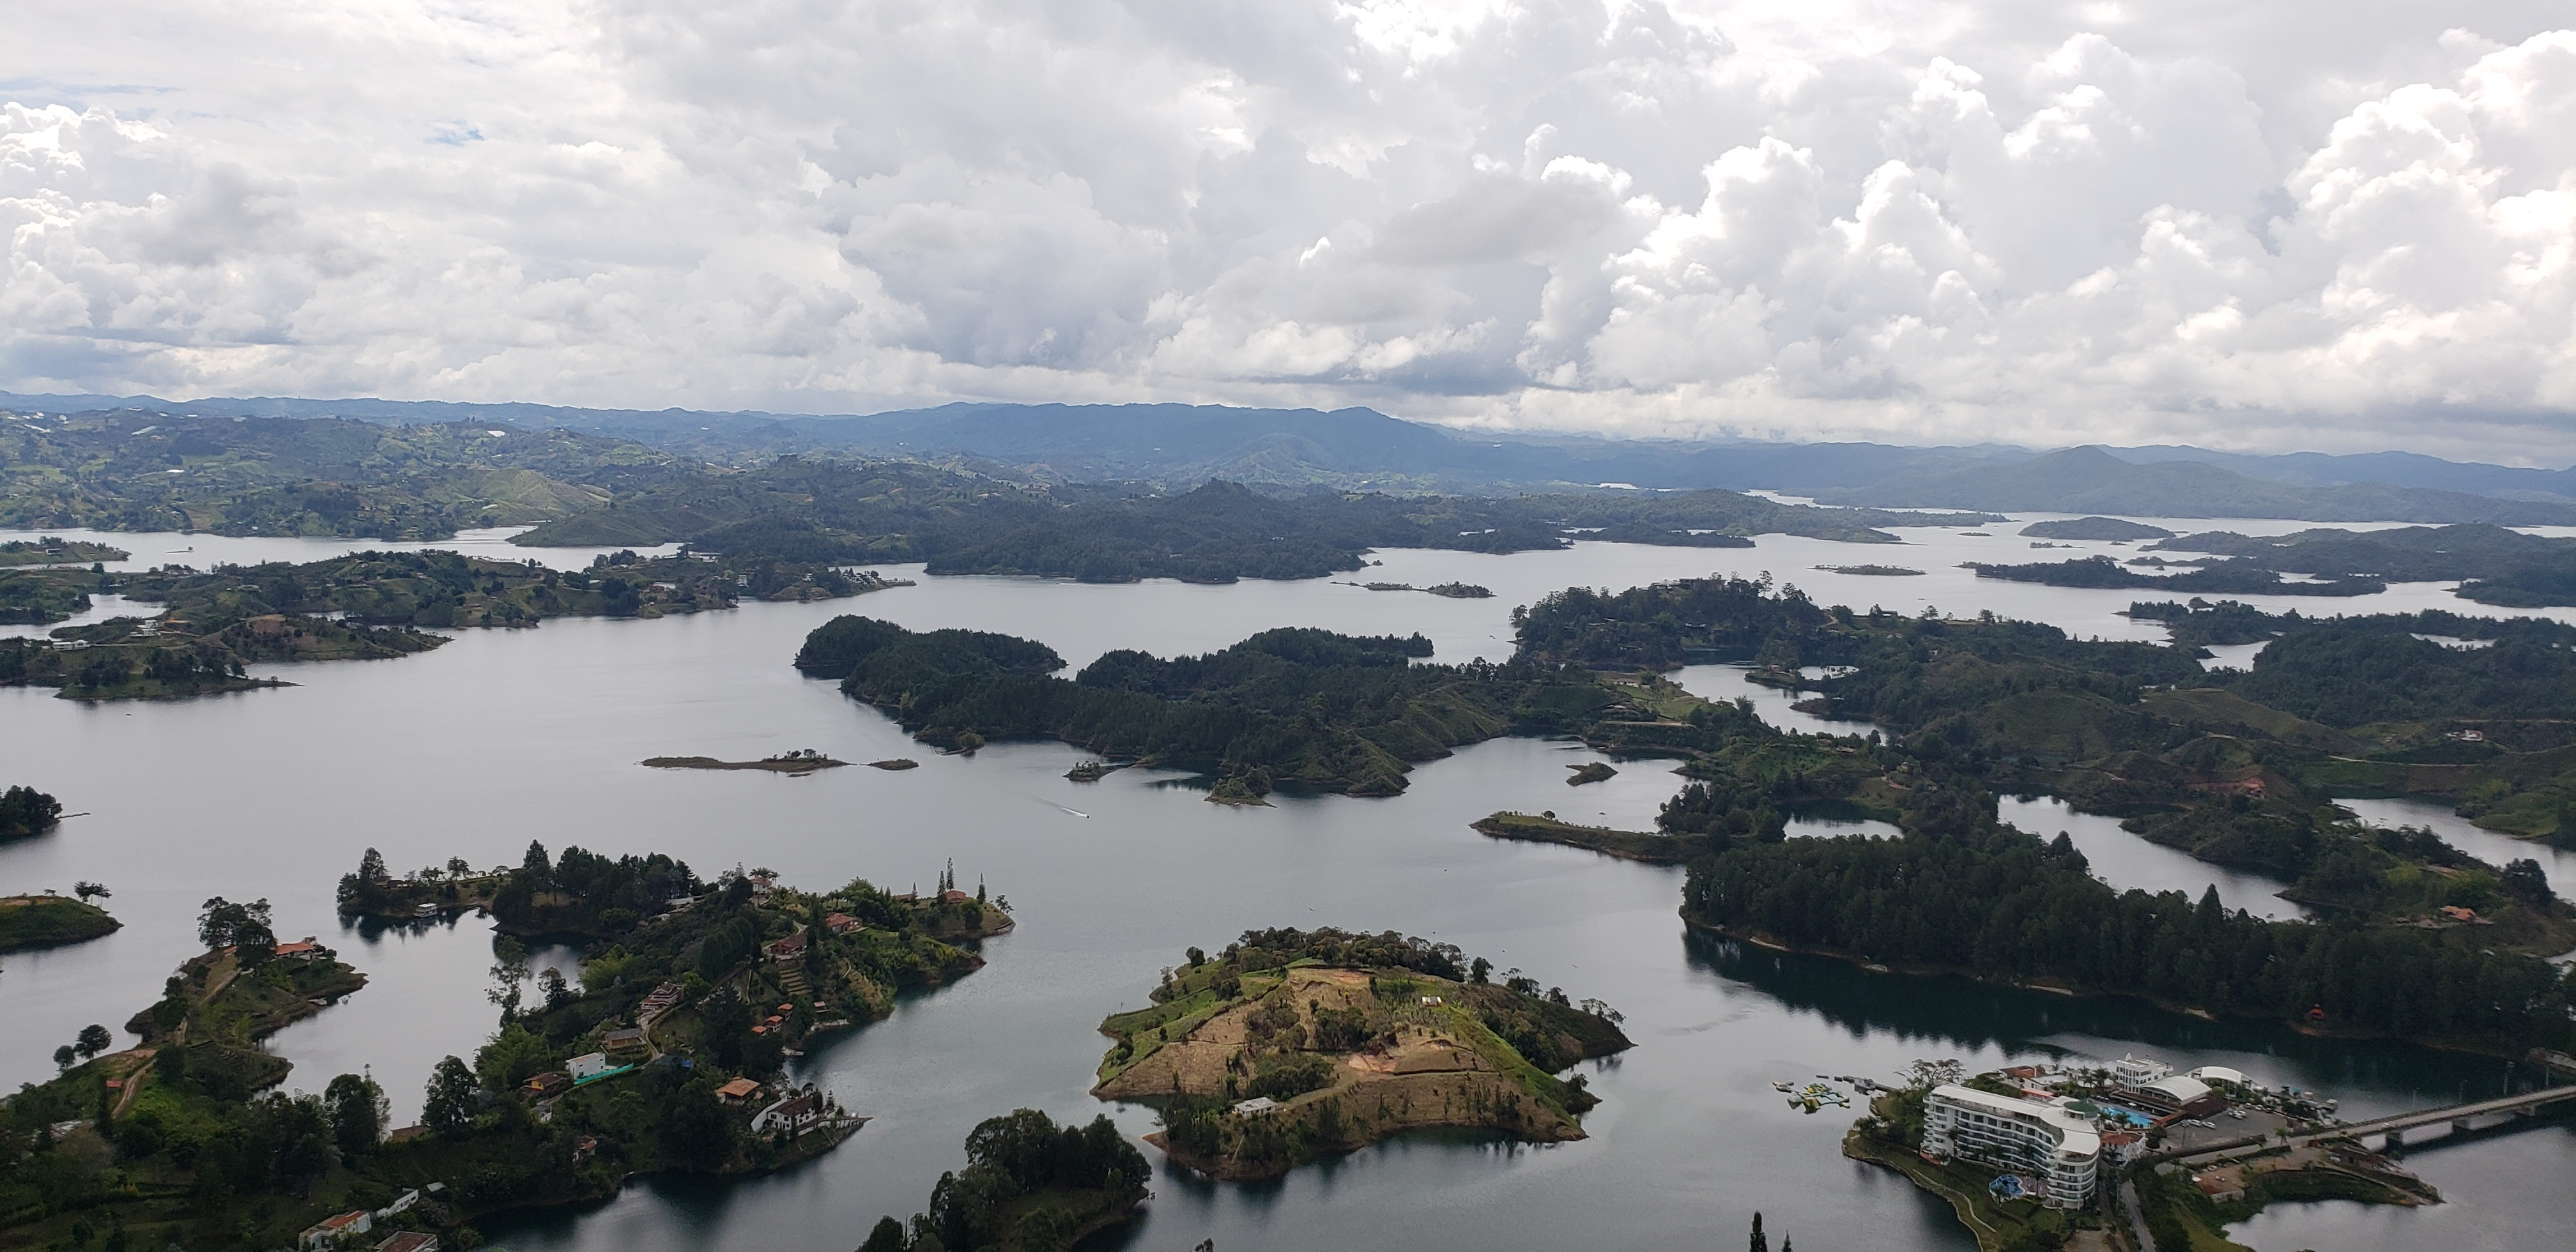 El Guatape - Why Visiting Medellin Should Be on Your Wish List